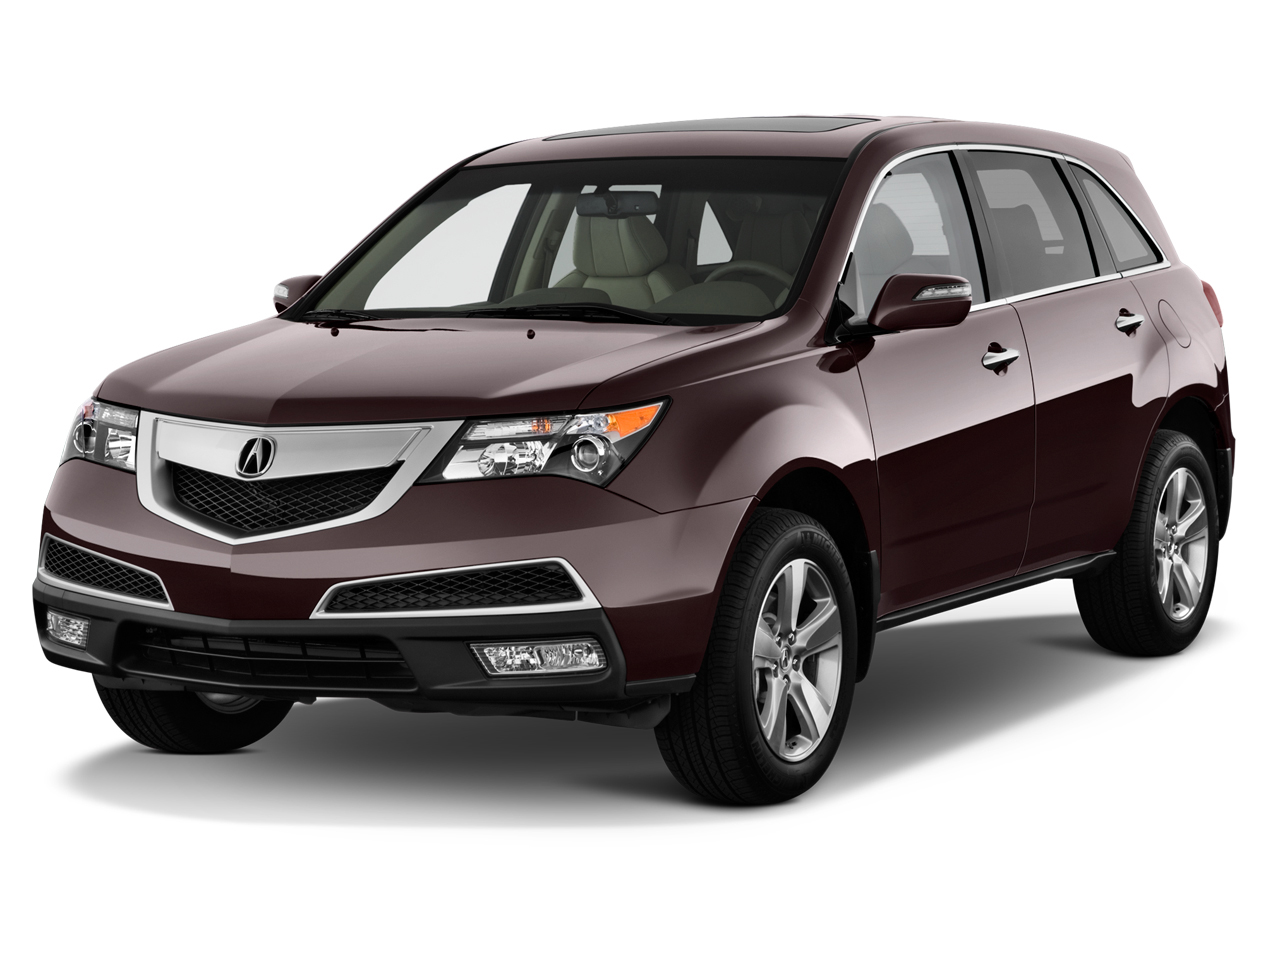 2013 acura mdx review ratings specs prices and photos the car connection. Black Bedroom Furniture Sets. Home Design Ideas